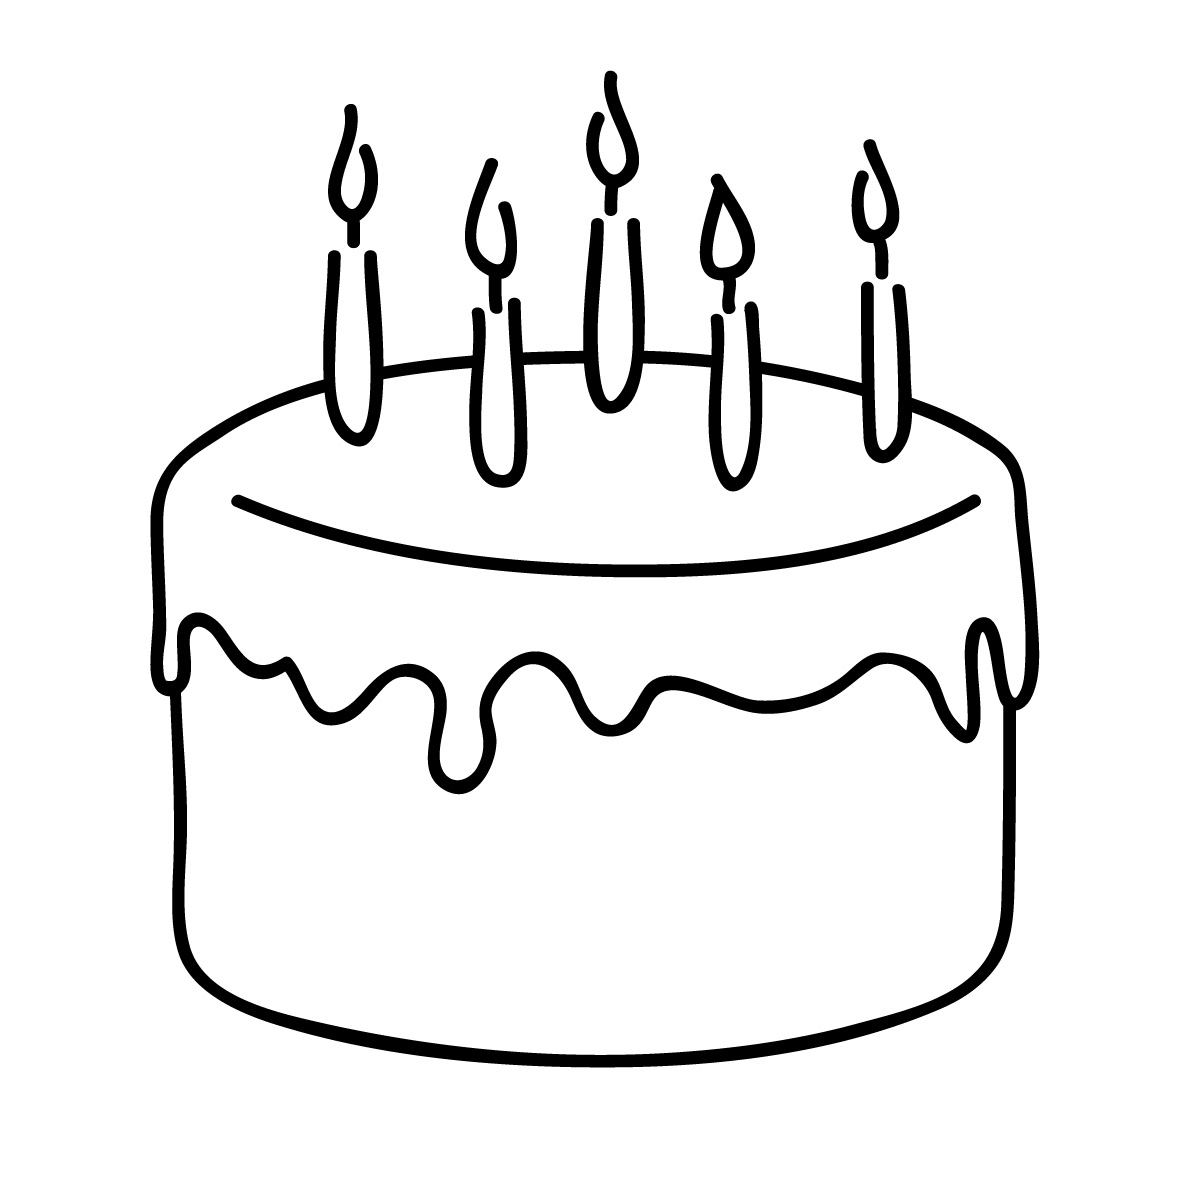 Cake Clipart Black And White Clipart Panda Free Clipart Images